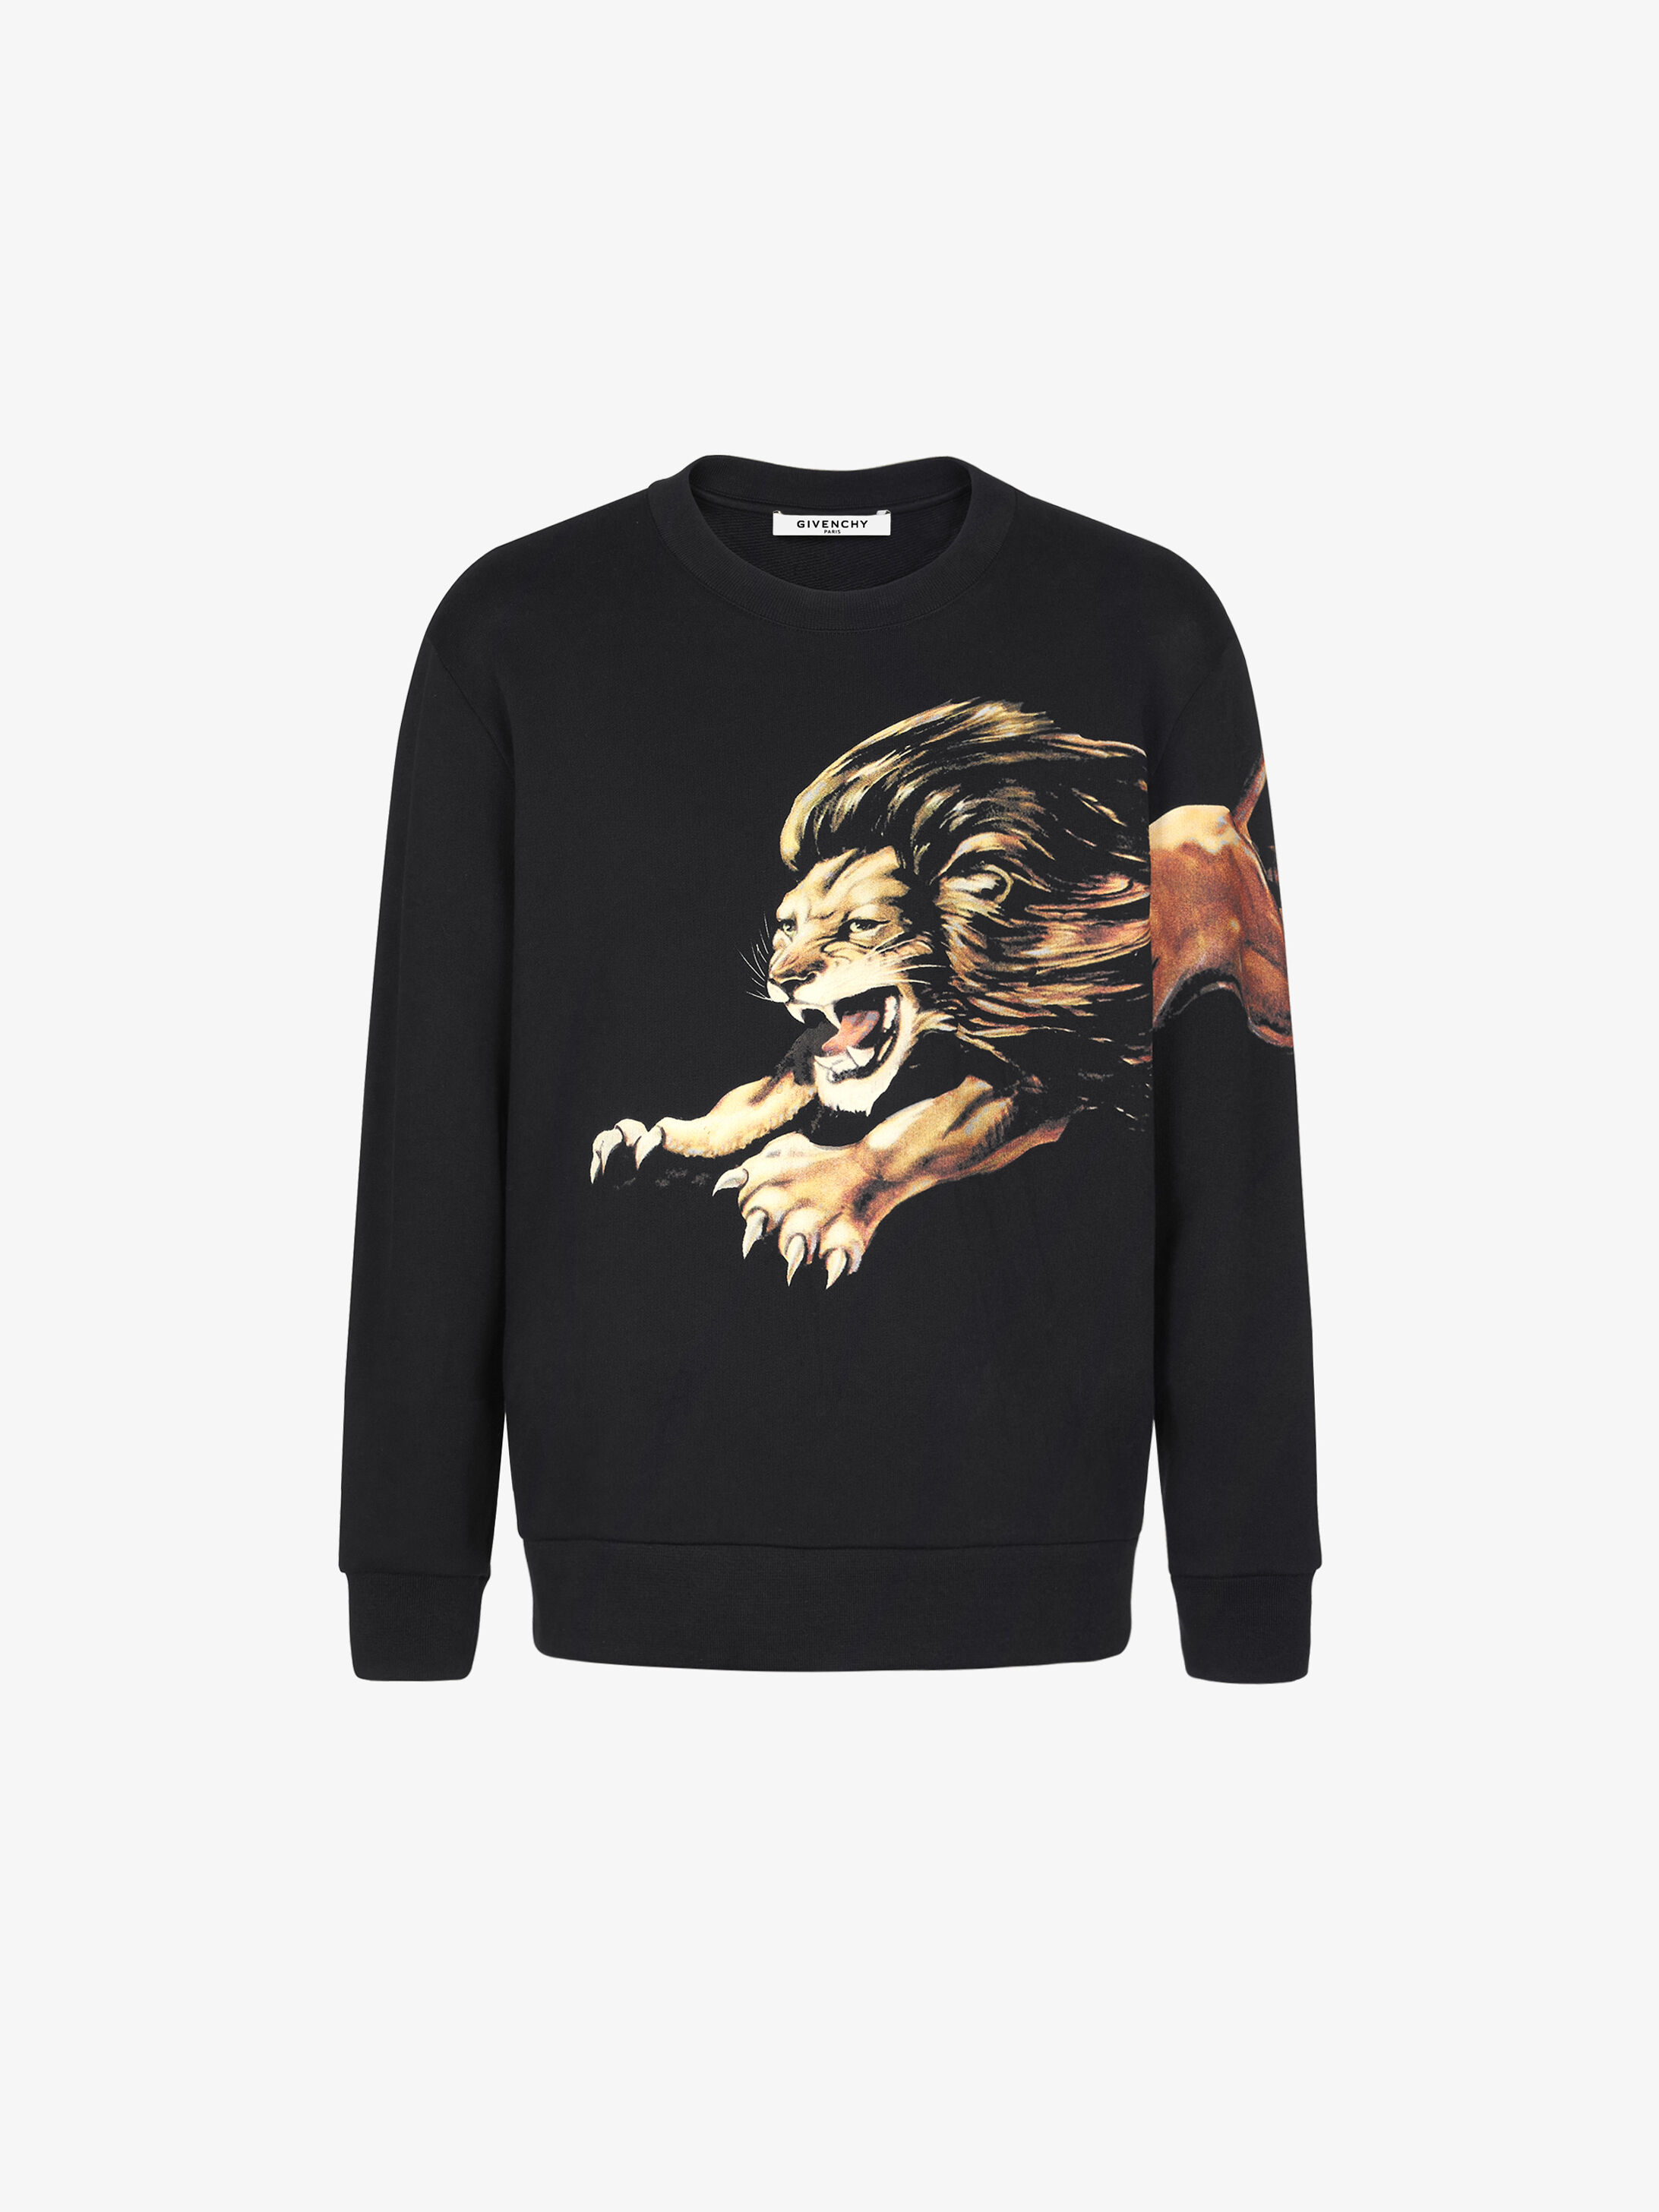 d98dd4cbf4be2 Men's Sweatshirts collection by Givenchy. | GIVENCHY Paris